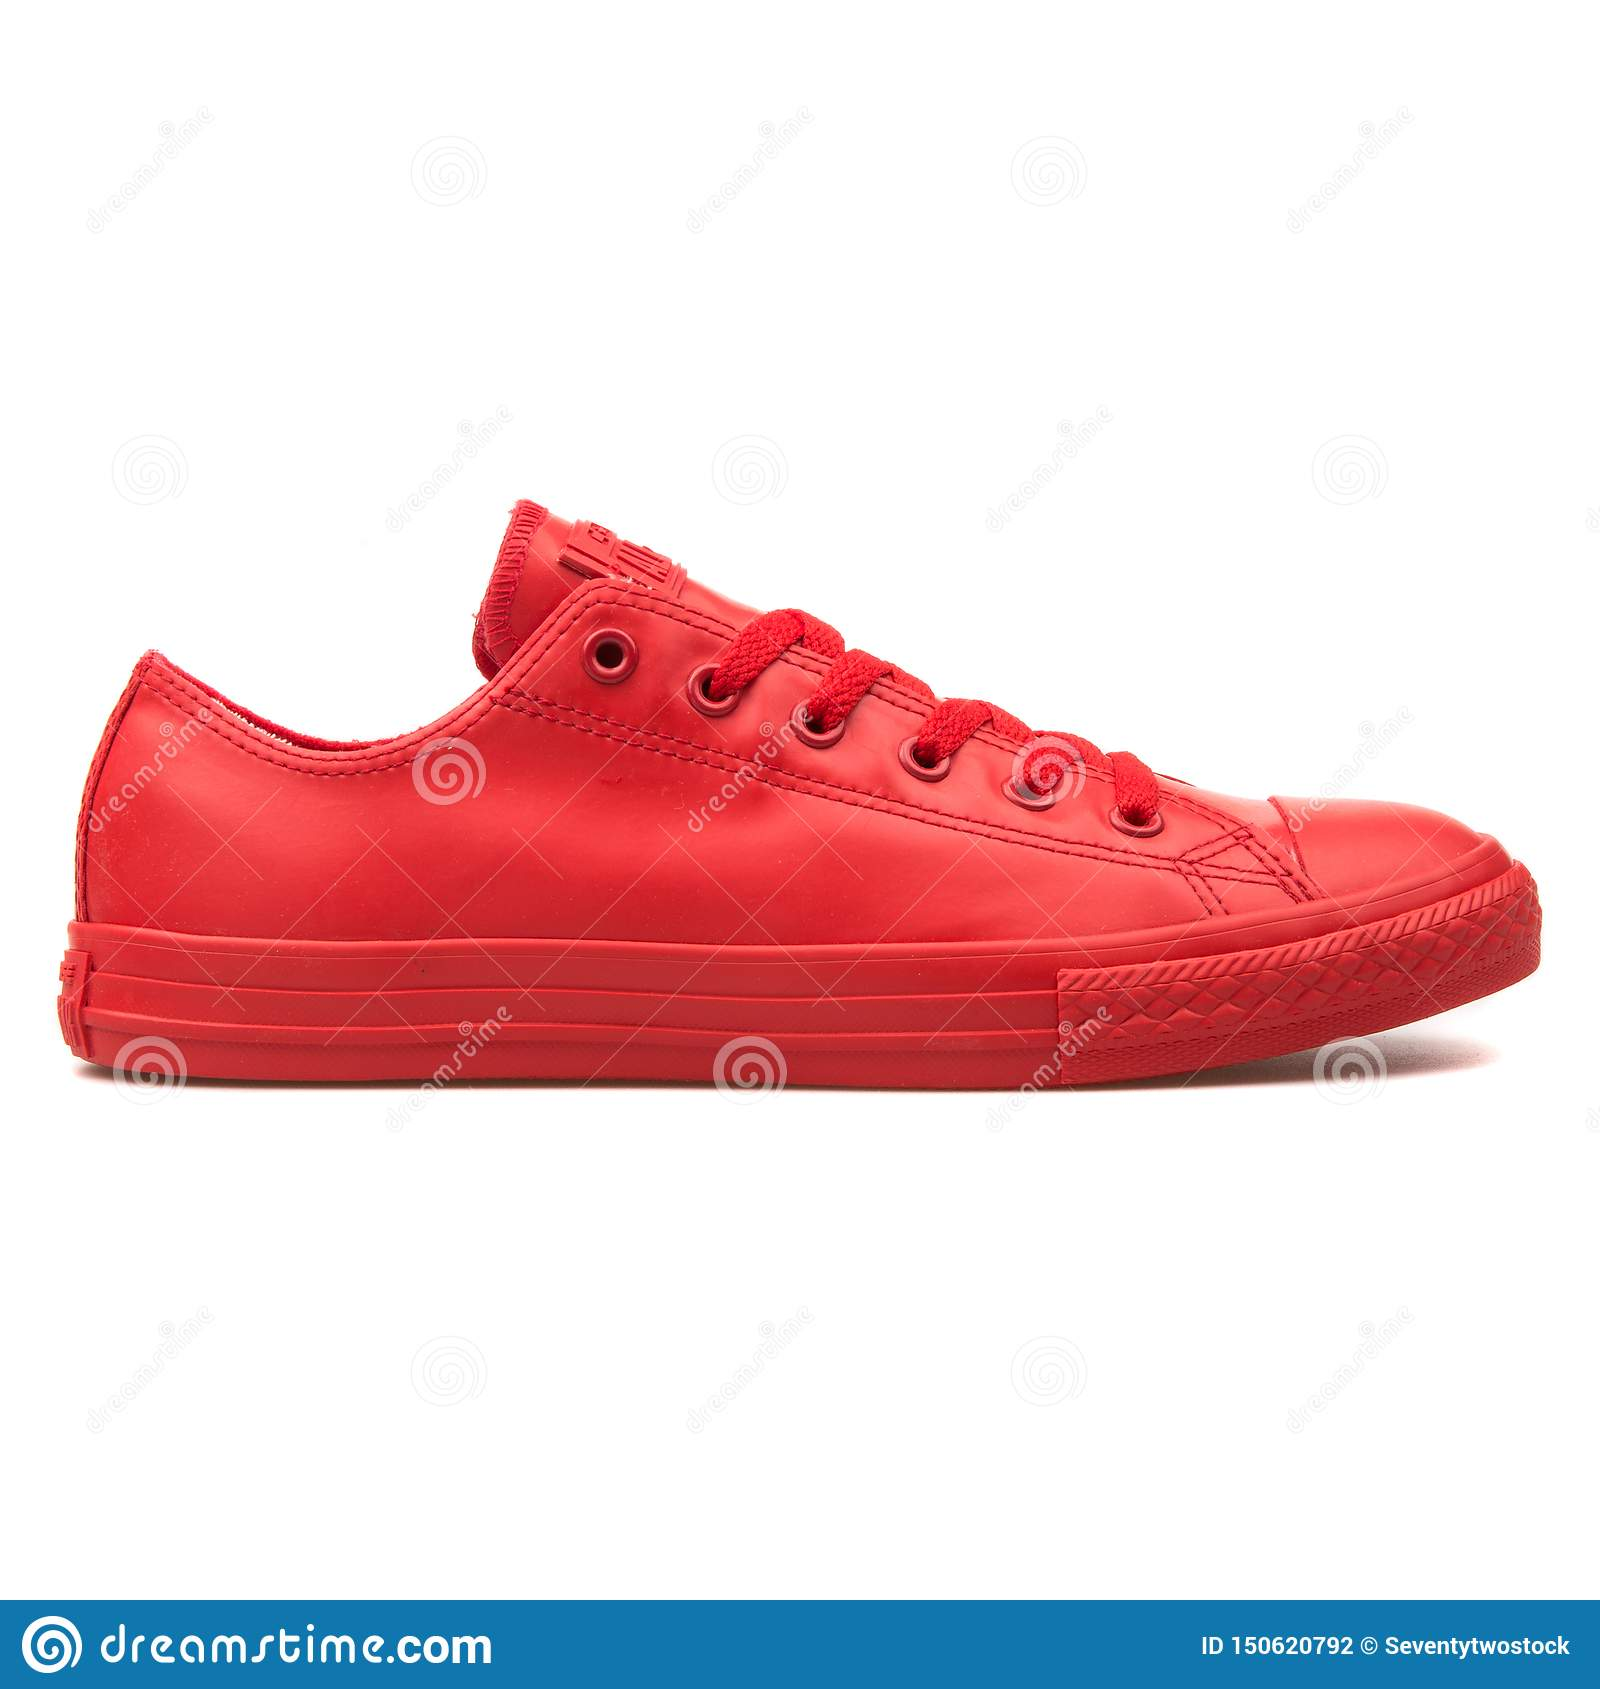 Converse Chuck Taylor All Star Rubber OX Red Sneaker